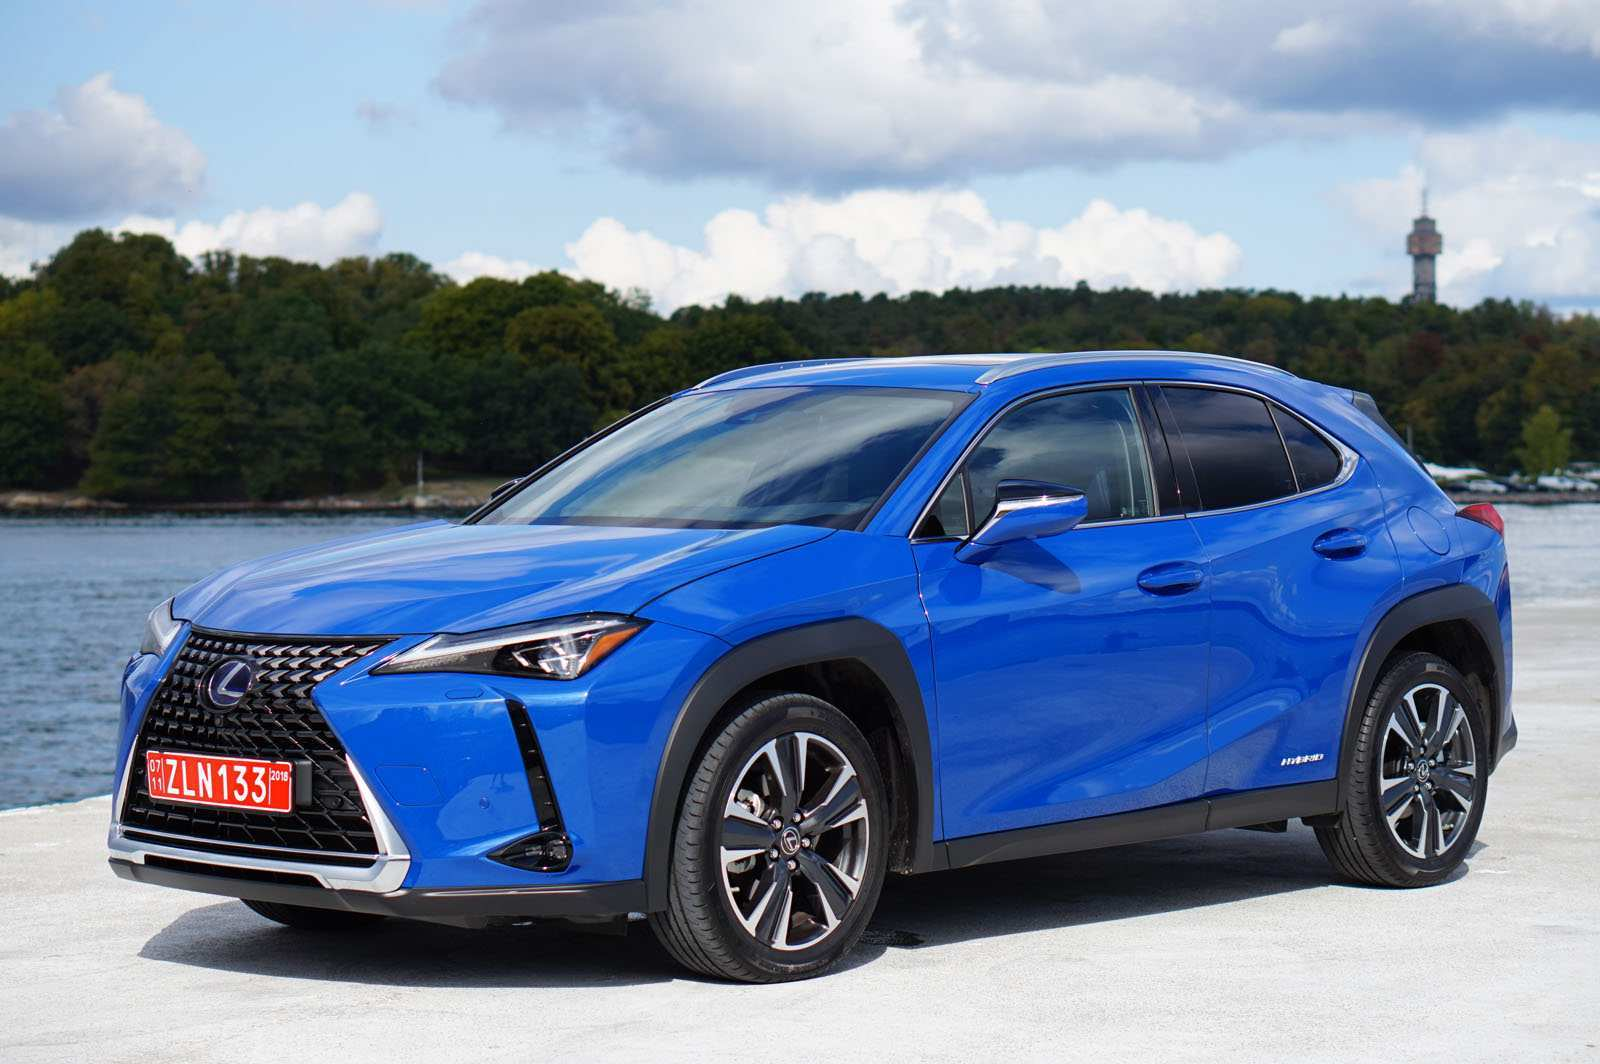 81 Great 2020 Lexus Ux Exterior Canada History by 2020 Lexus Ux Exterior Canada